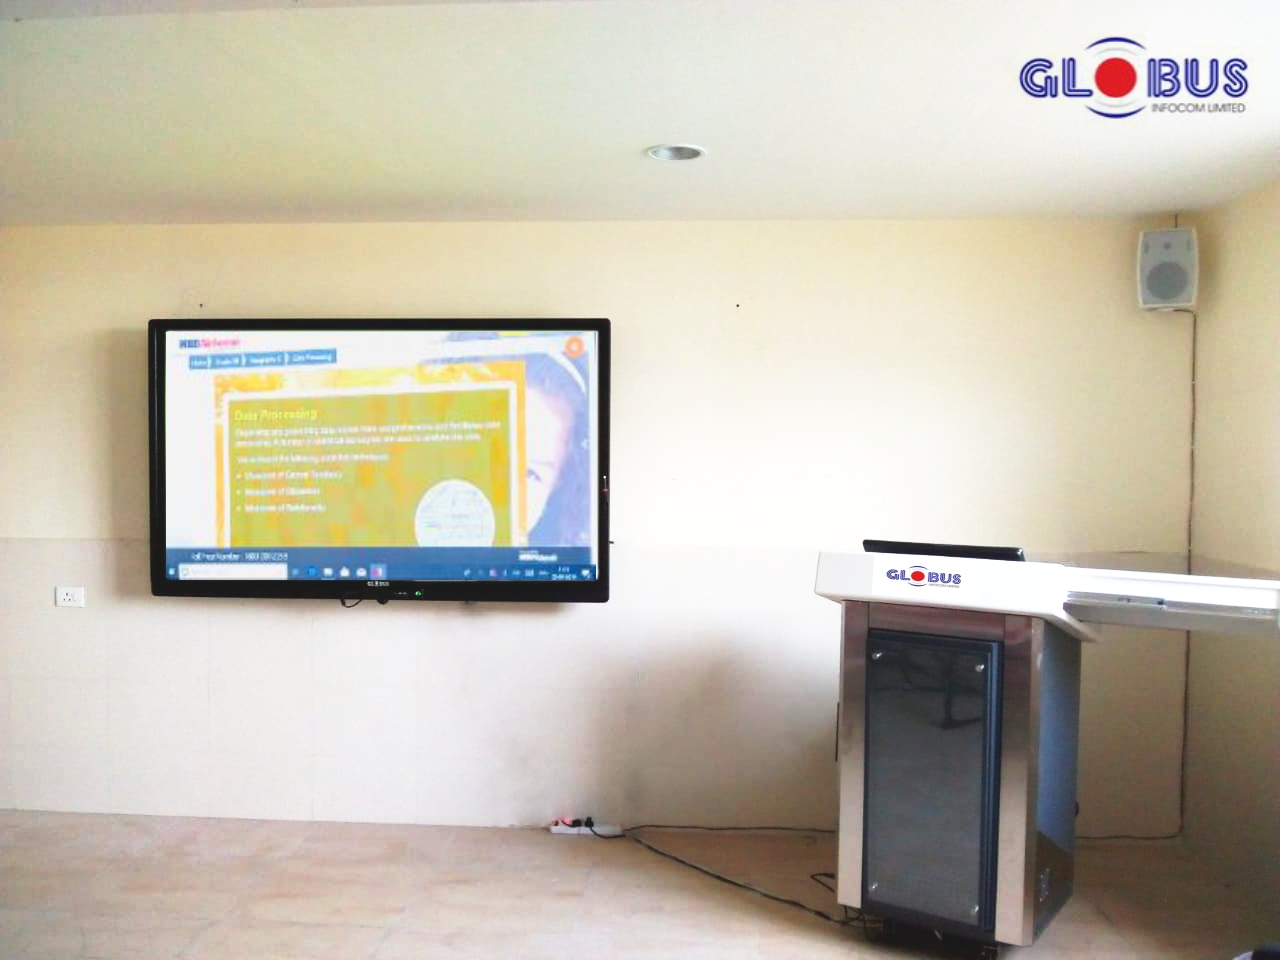 Globus IFPD for commercial use